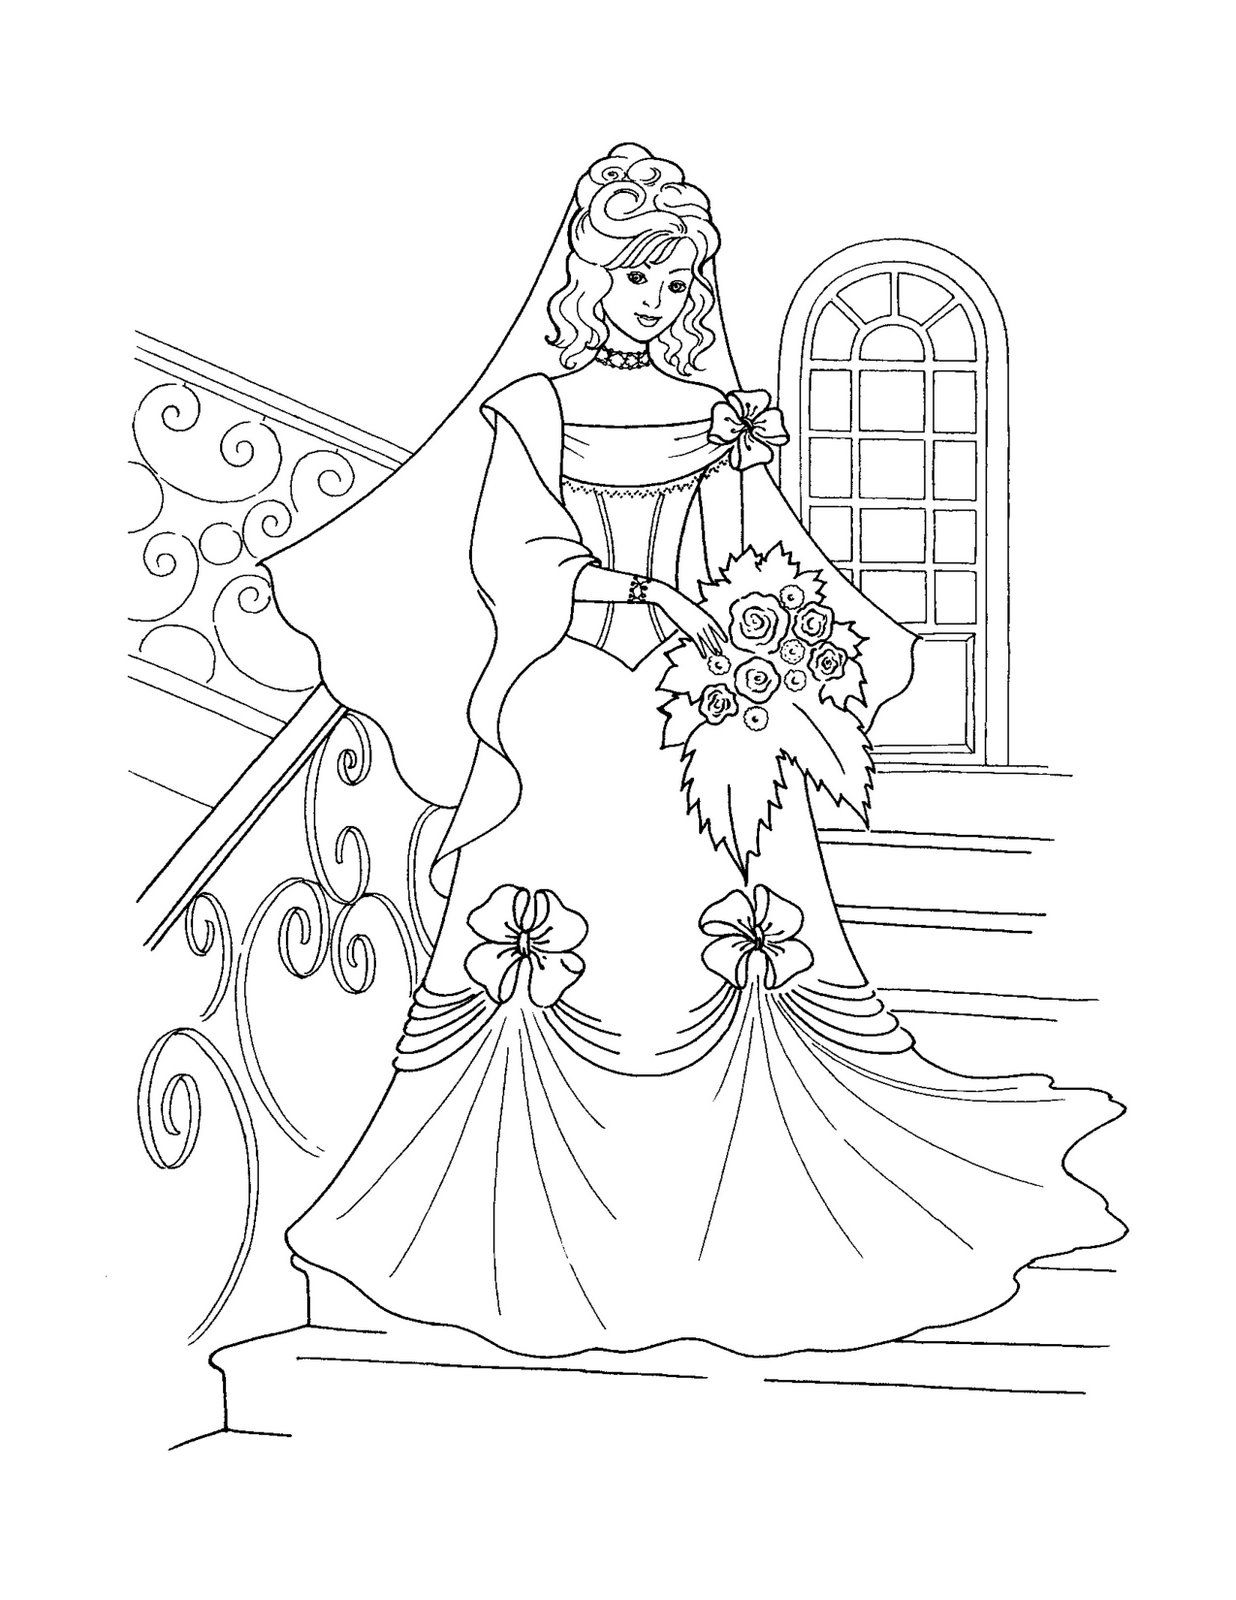 Disney princess coloring book for adults - Coloring Pages Of Princess